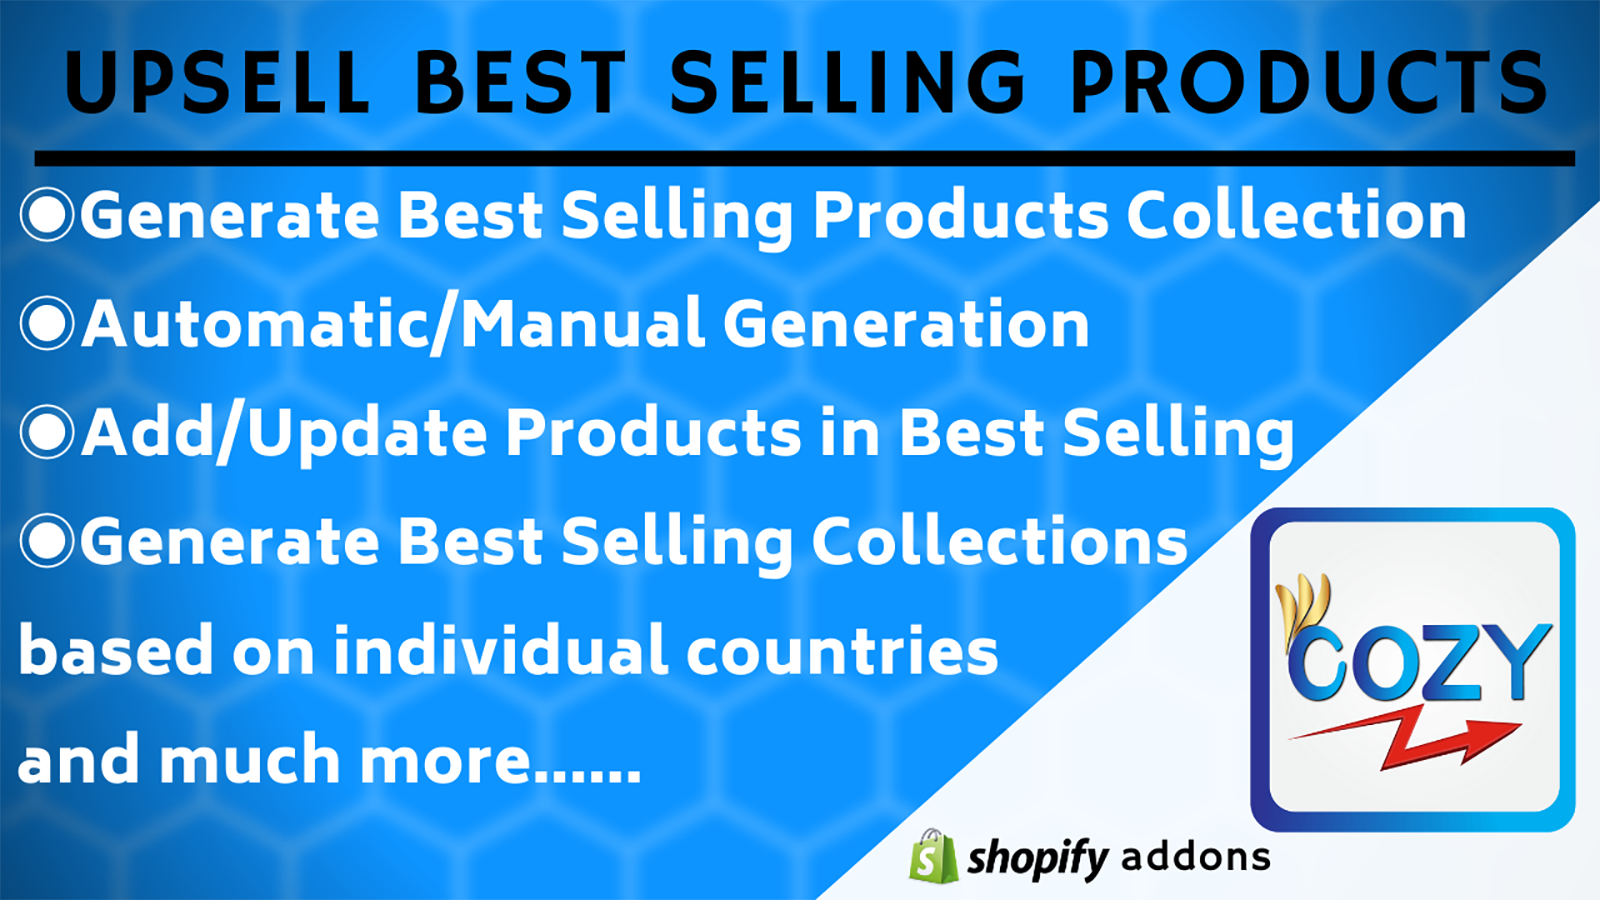 Best Selling Collection Generate for different locations